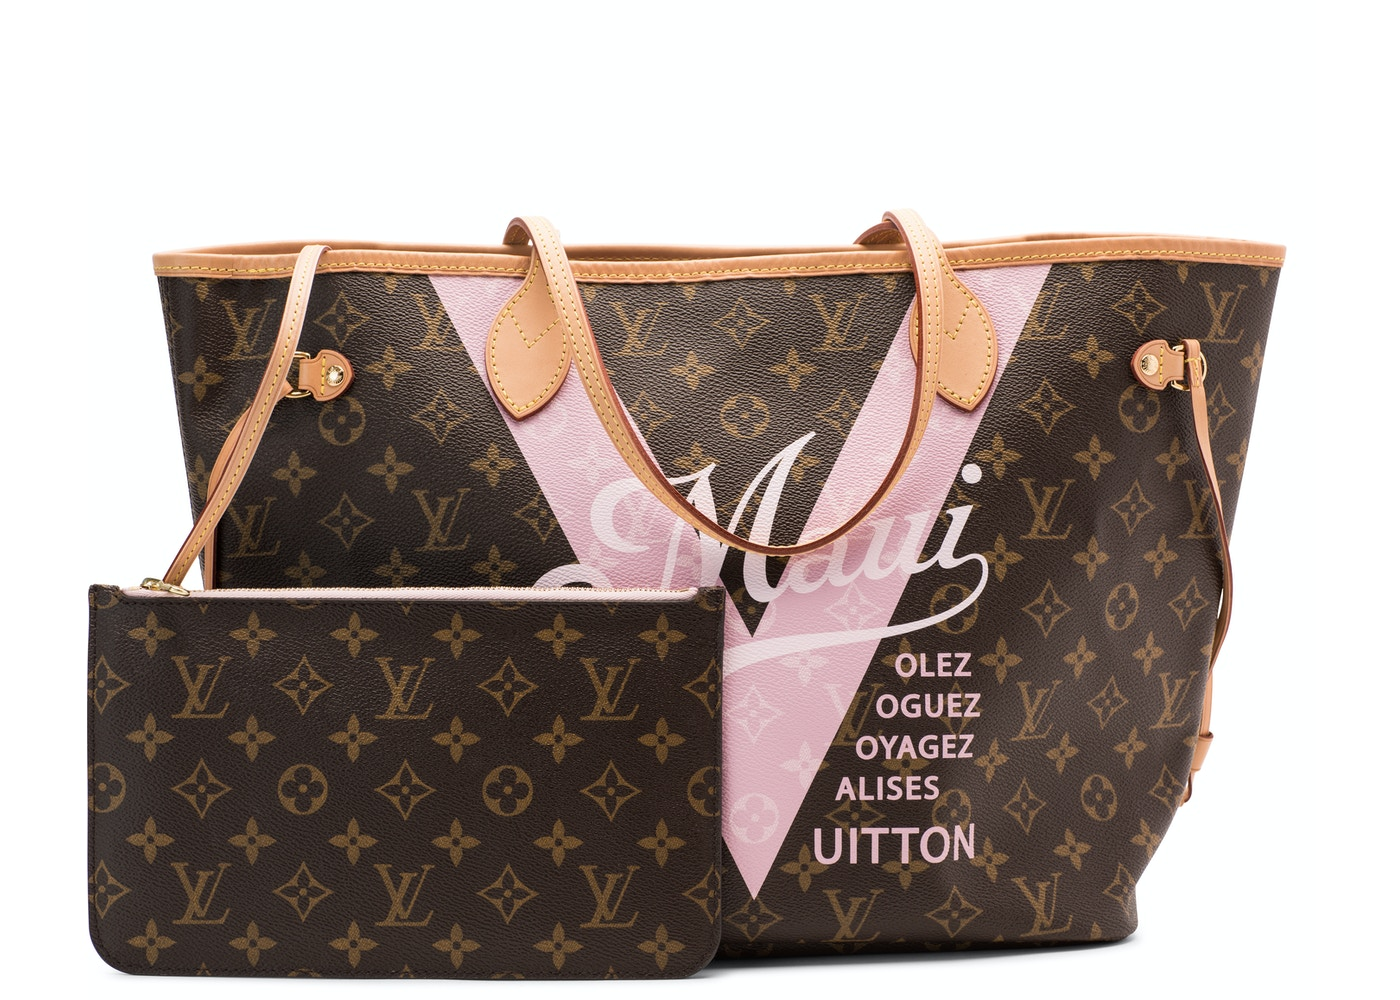 bc2c9781445e Louis Vuitton Tote Neverfull Monogram Maui V MM Rose Ballerine. Monogram  Maui V MM Rose Ballerine